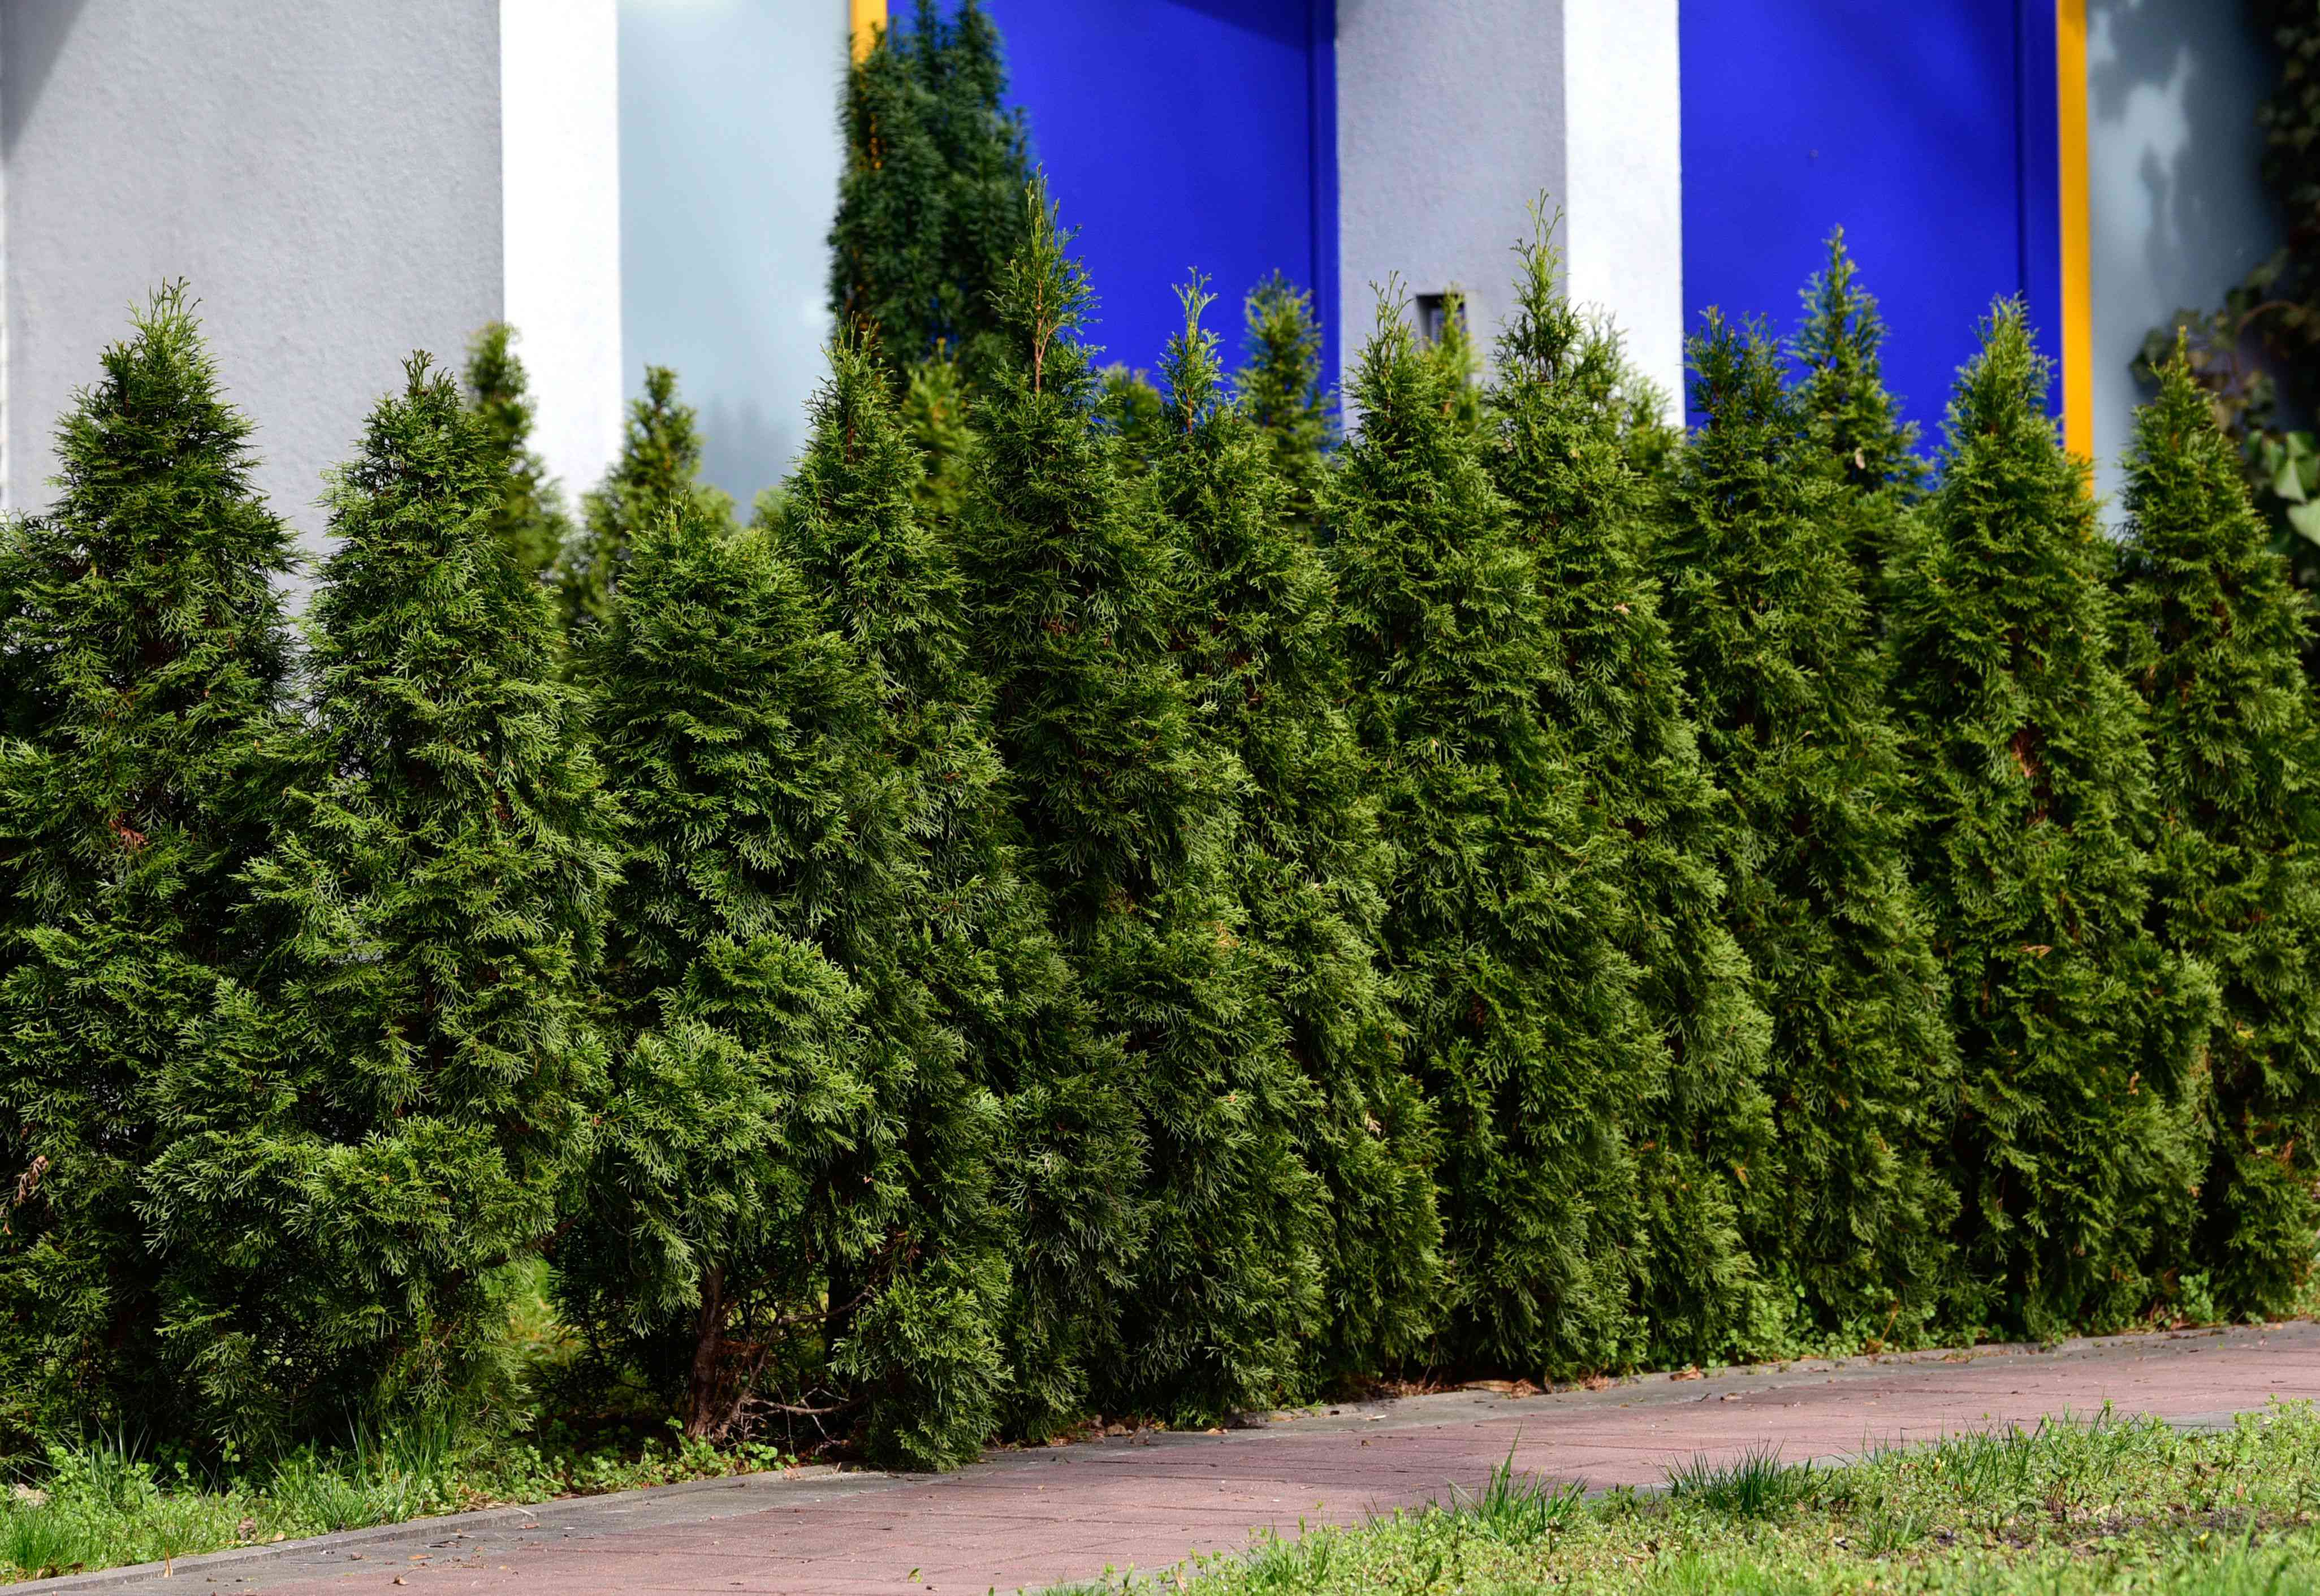 Arborvitae dense bushes trimmed in a pyramidal form next to white and blue building